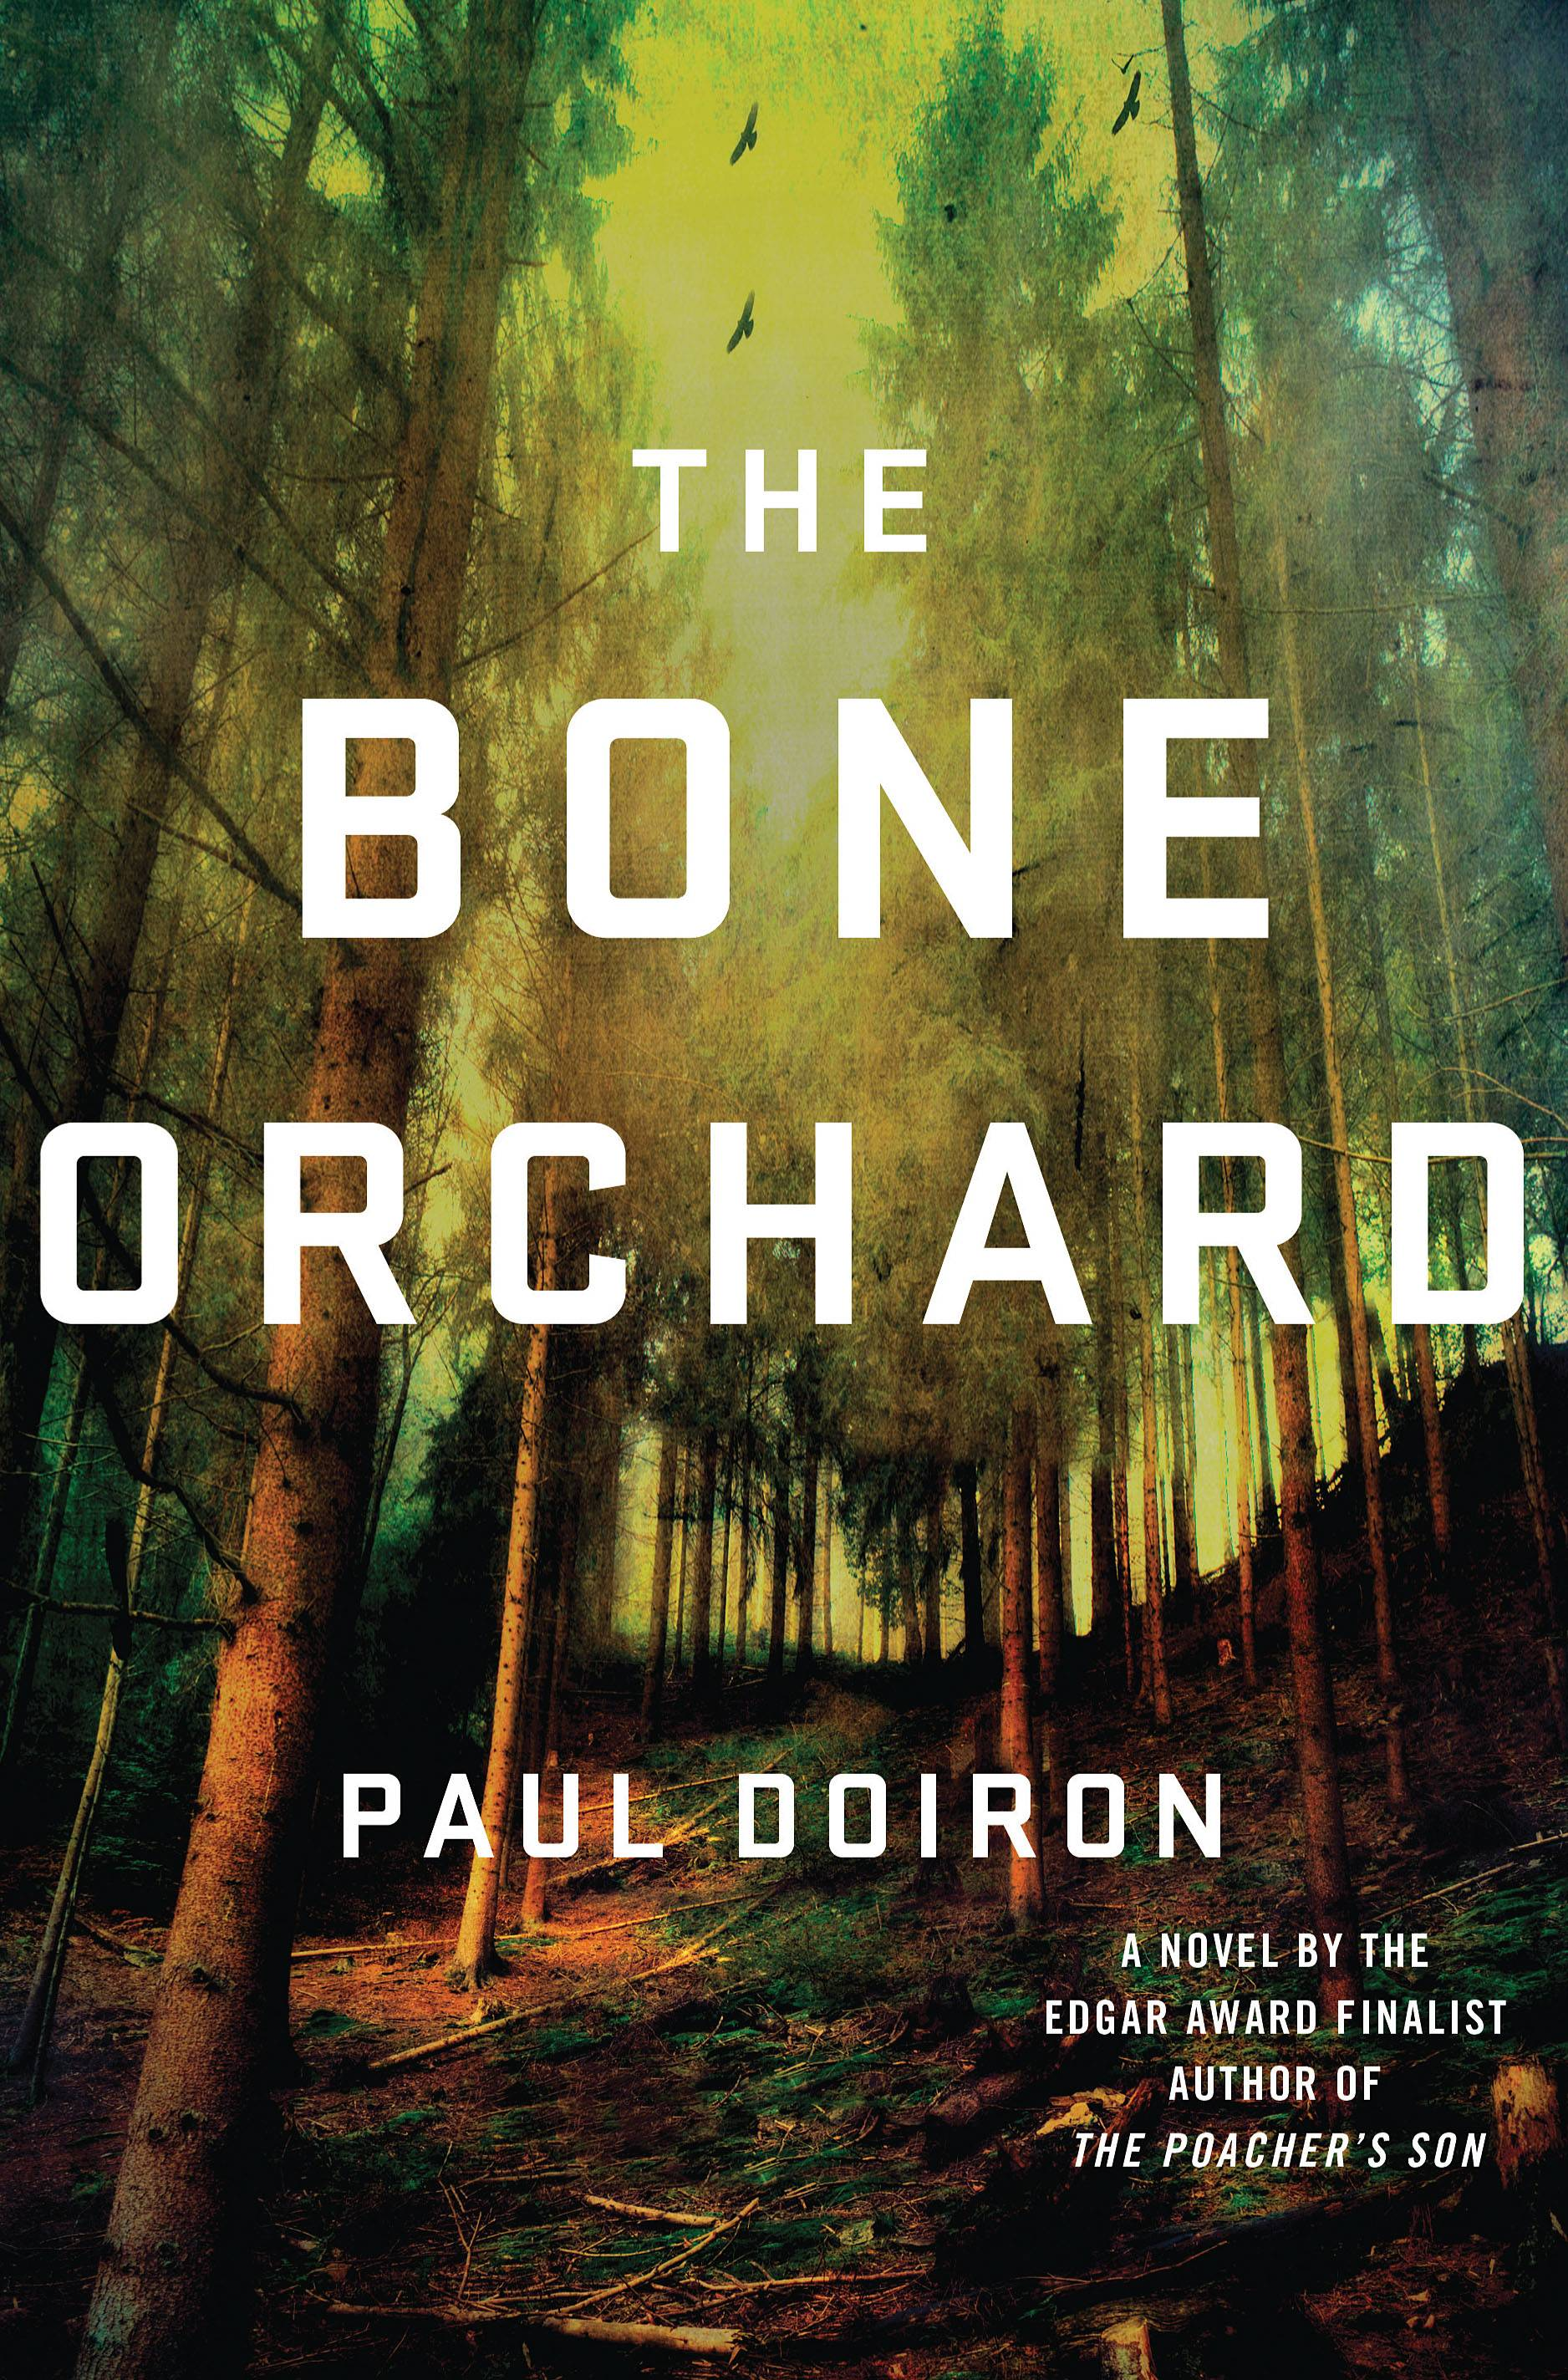 """The Bone Orchard"" by Paul Doiron is both a rich exploration of character and a satisfying mystery."